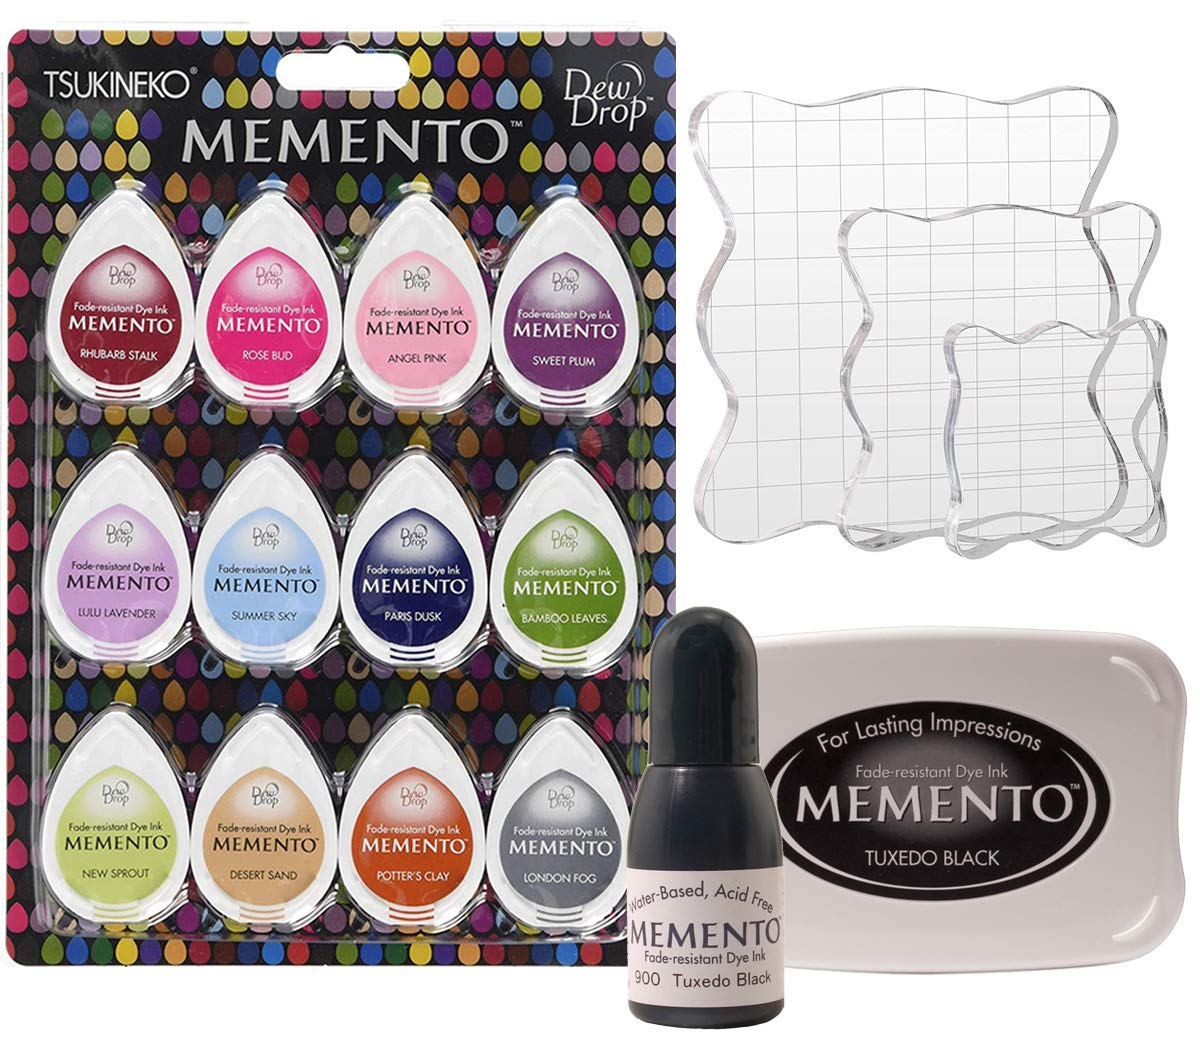 Bundle Tsukineko Sorbet Scoop Momento Inkpad Set-Pack of 12, Tsukineko Full-Size Memento Inkpad Tuxedo Black, Black Re-Inker, Pixiss 3X Acrylic Stamp Blocks